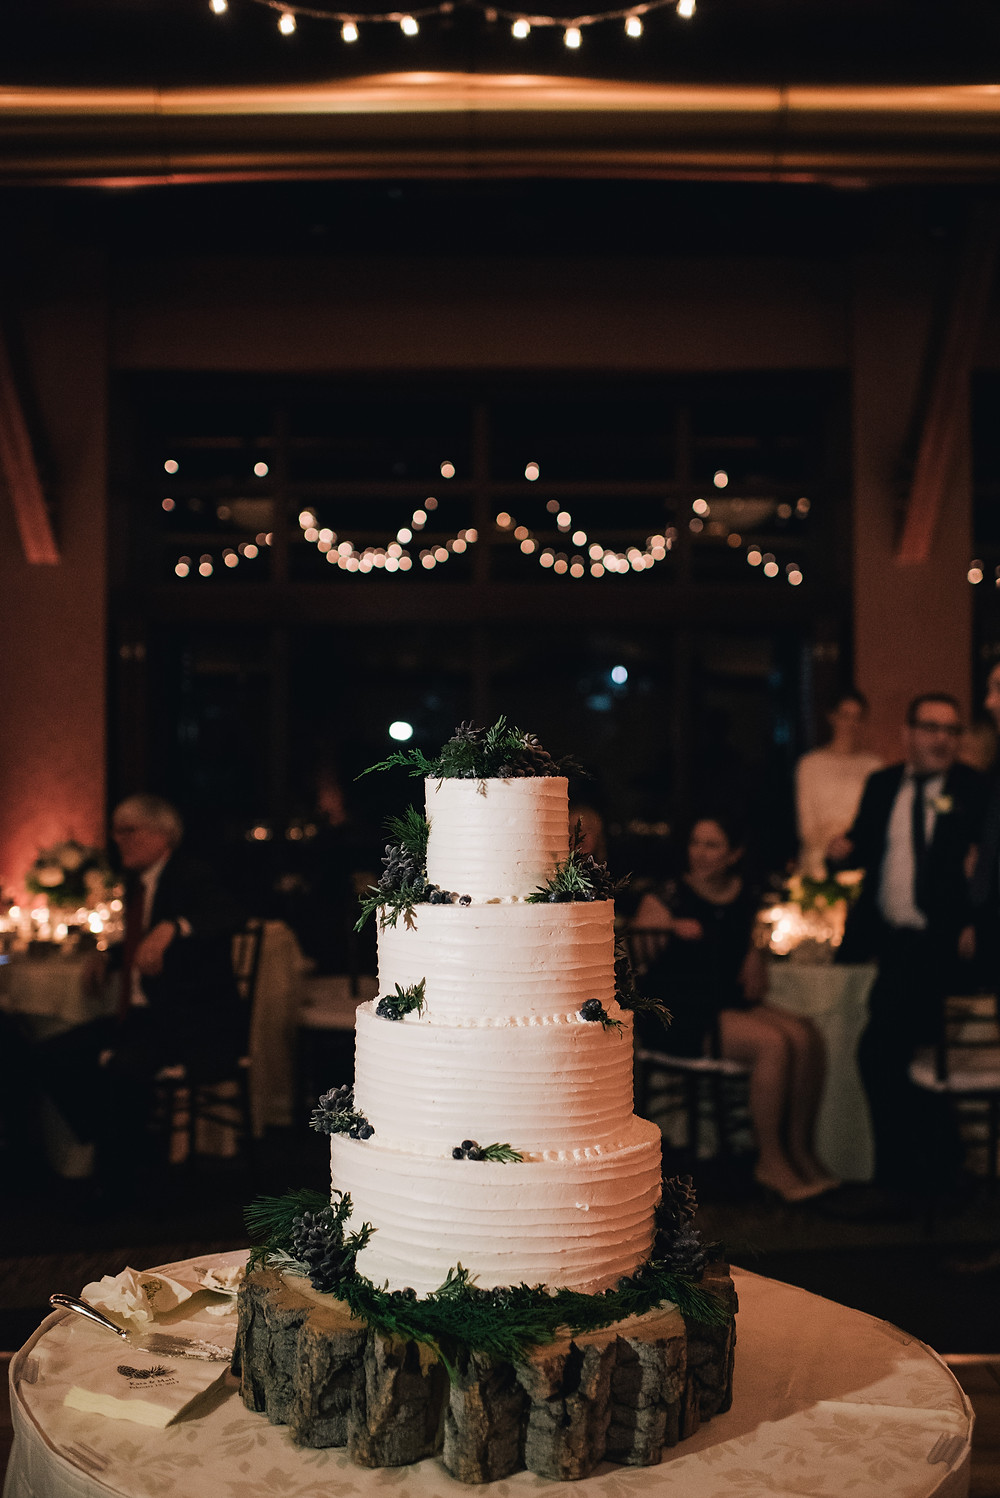 Winter wedding cake with greenery and pinecones